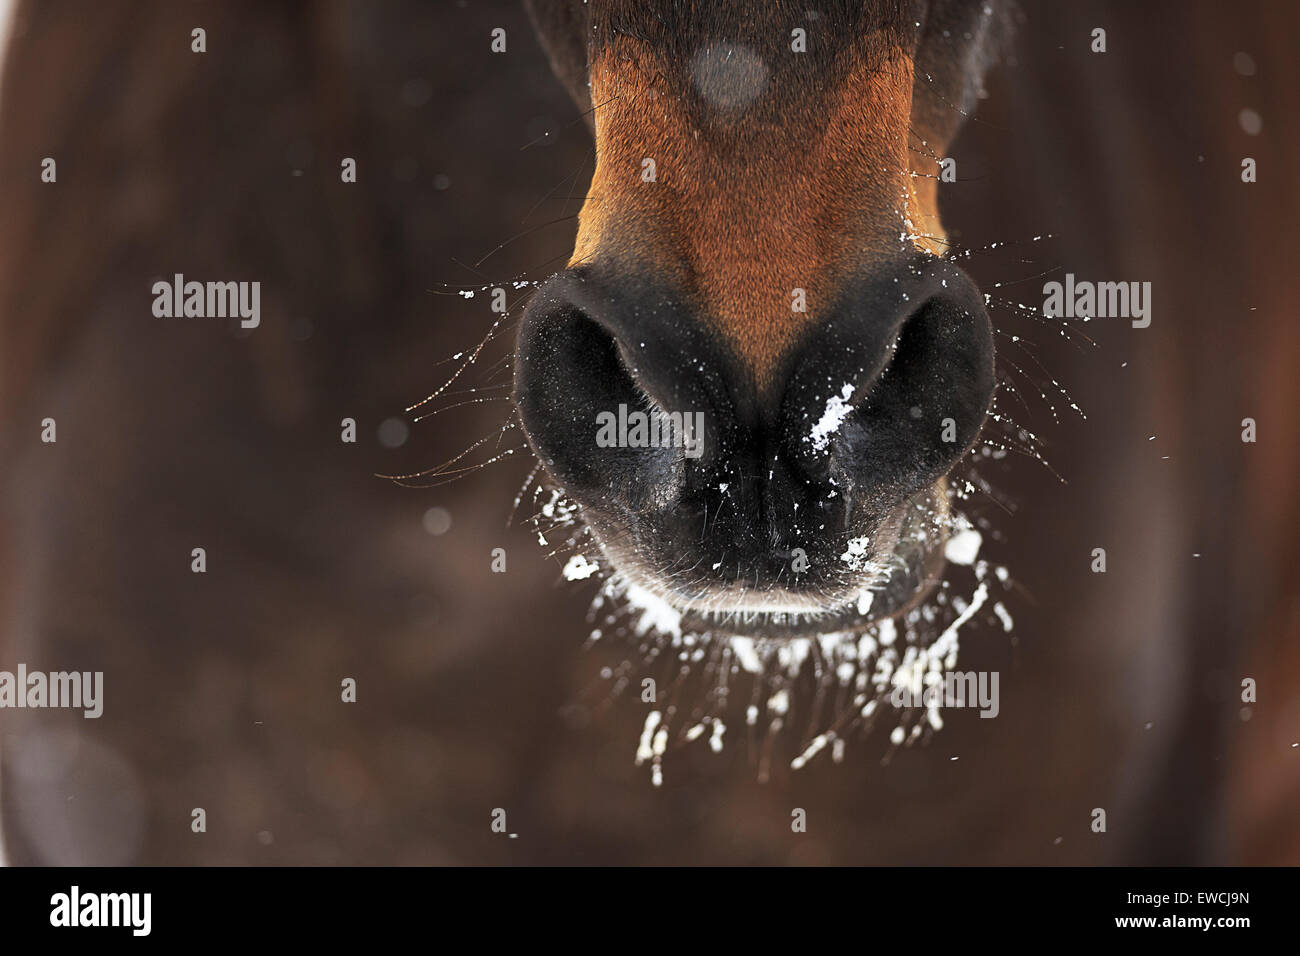 Domestic horse. Snow on the mout and nostrils of a bay horse. Germany - Stock Image